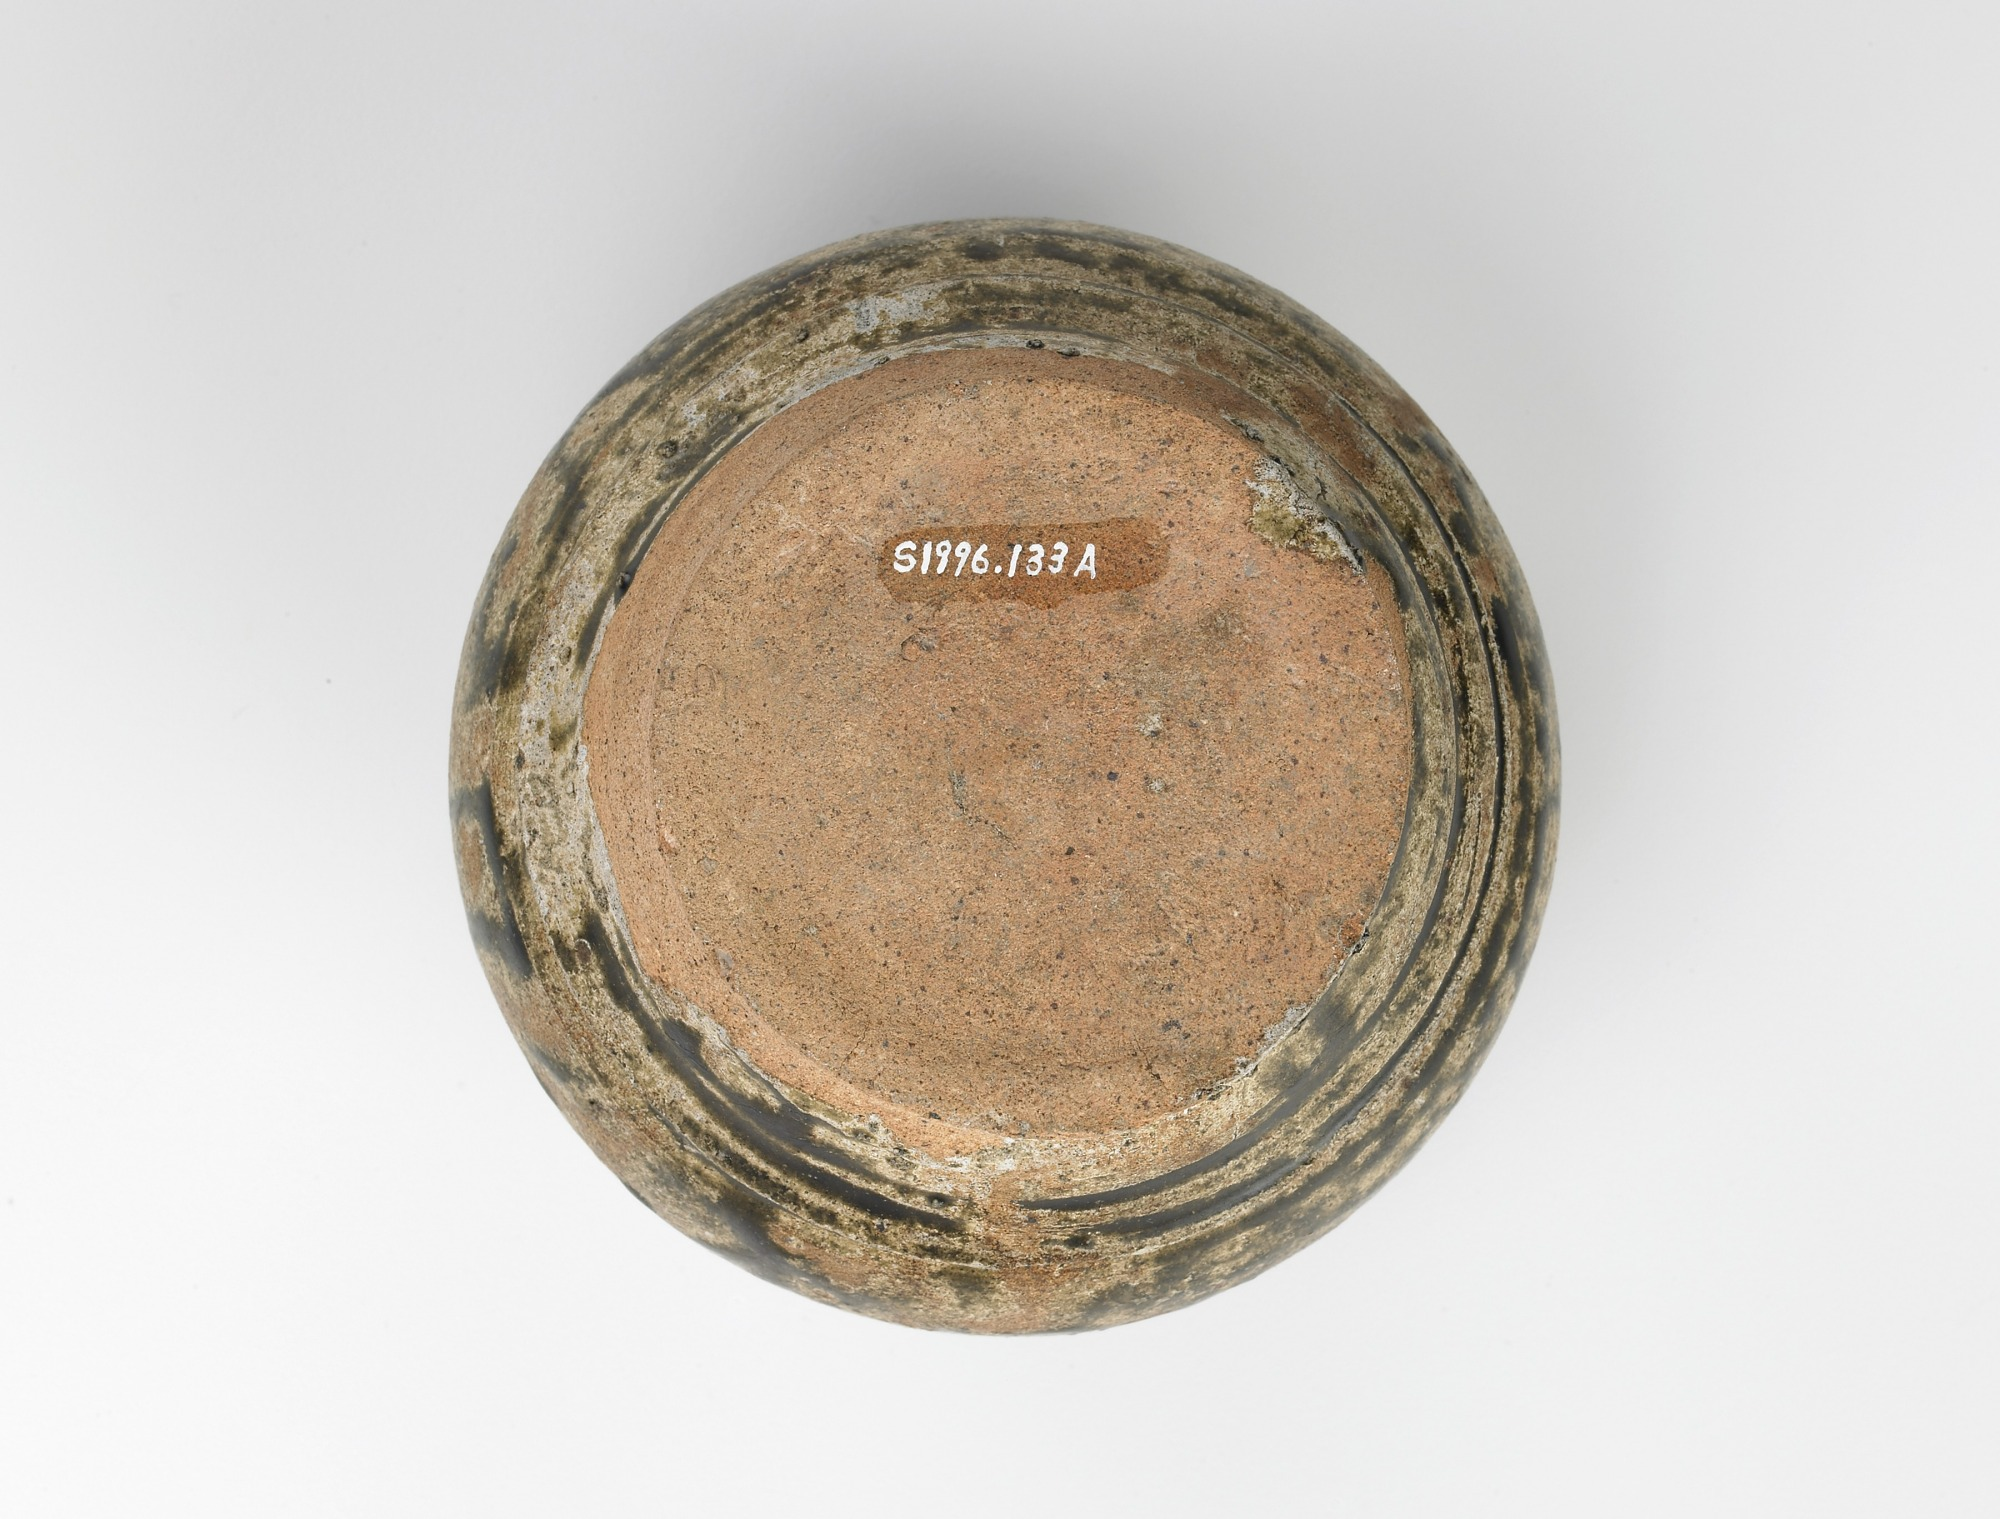 base: Jar with lid